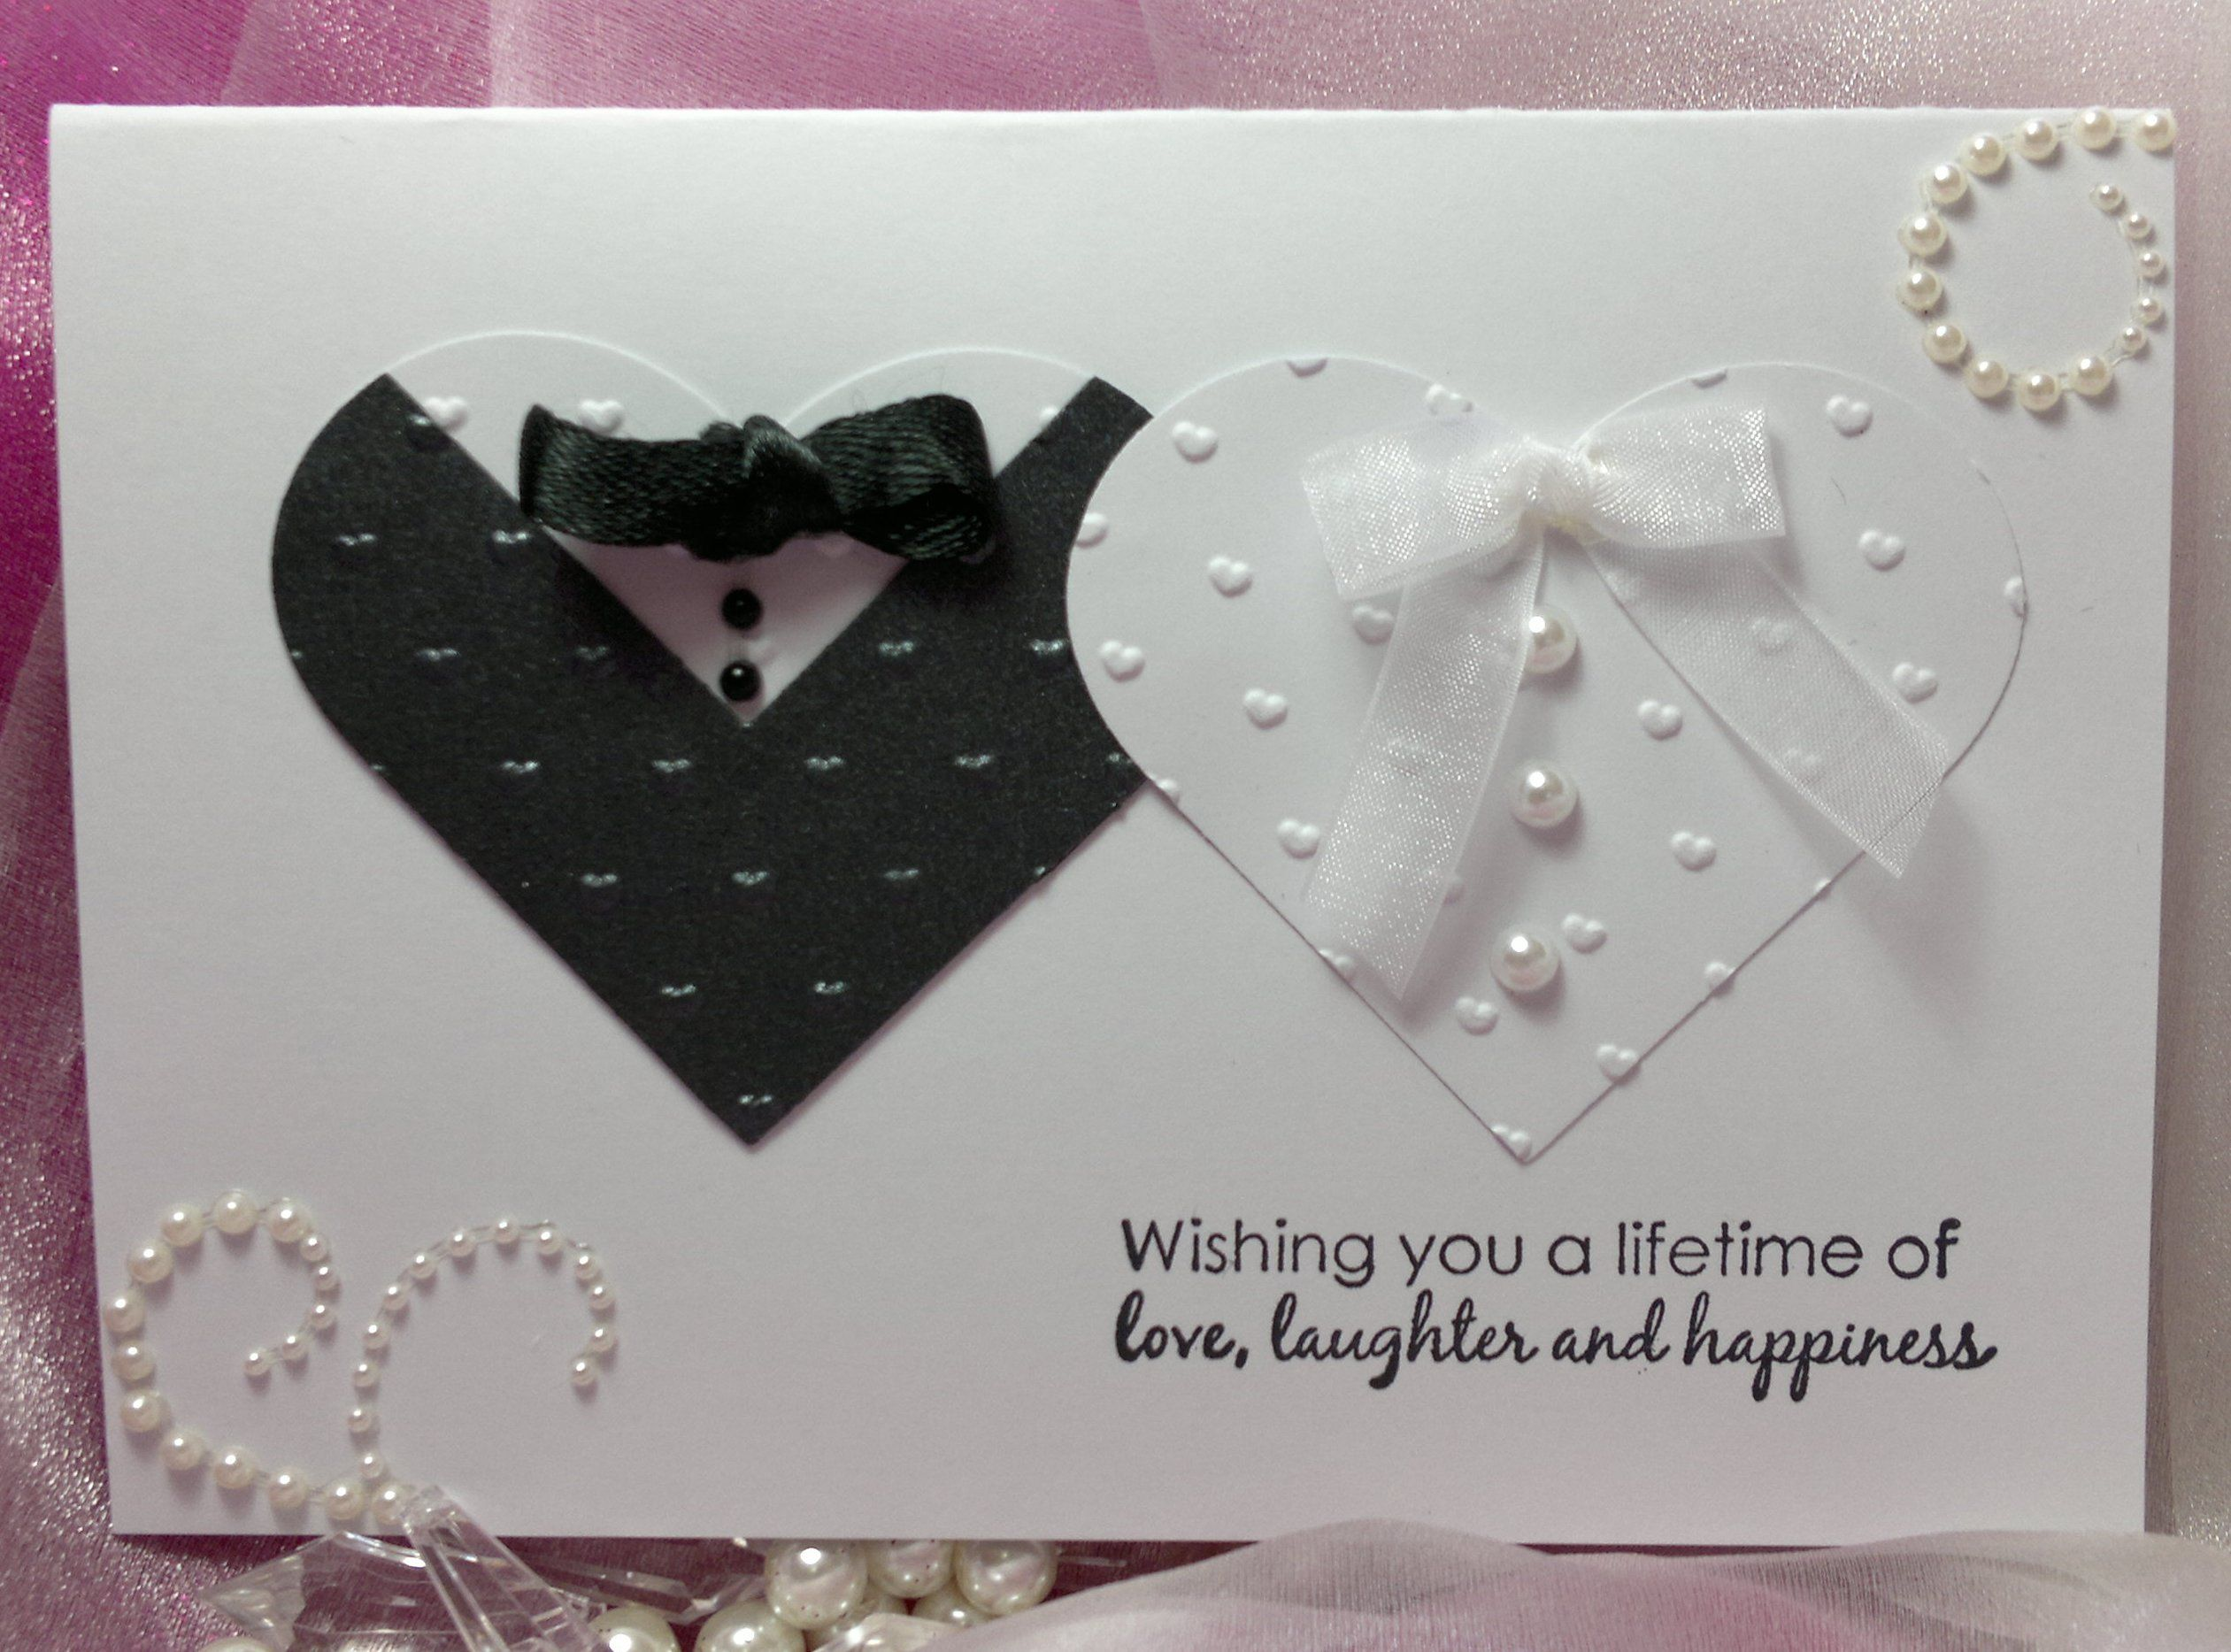 Handmade Cards Ideas Click Image To Enlarge Details